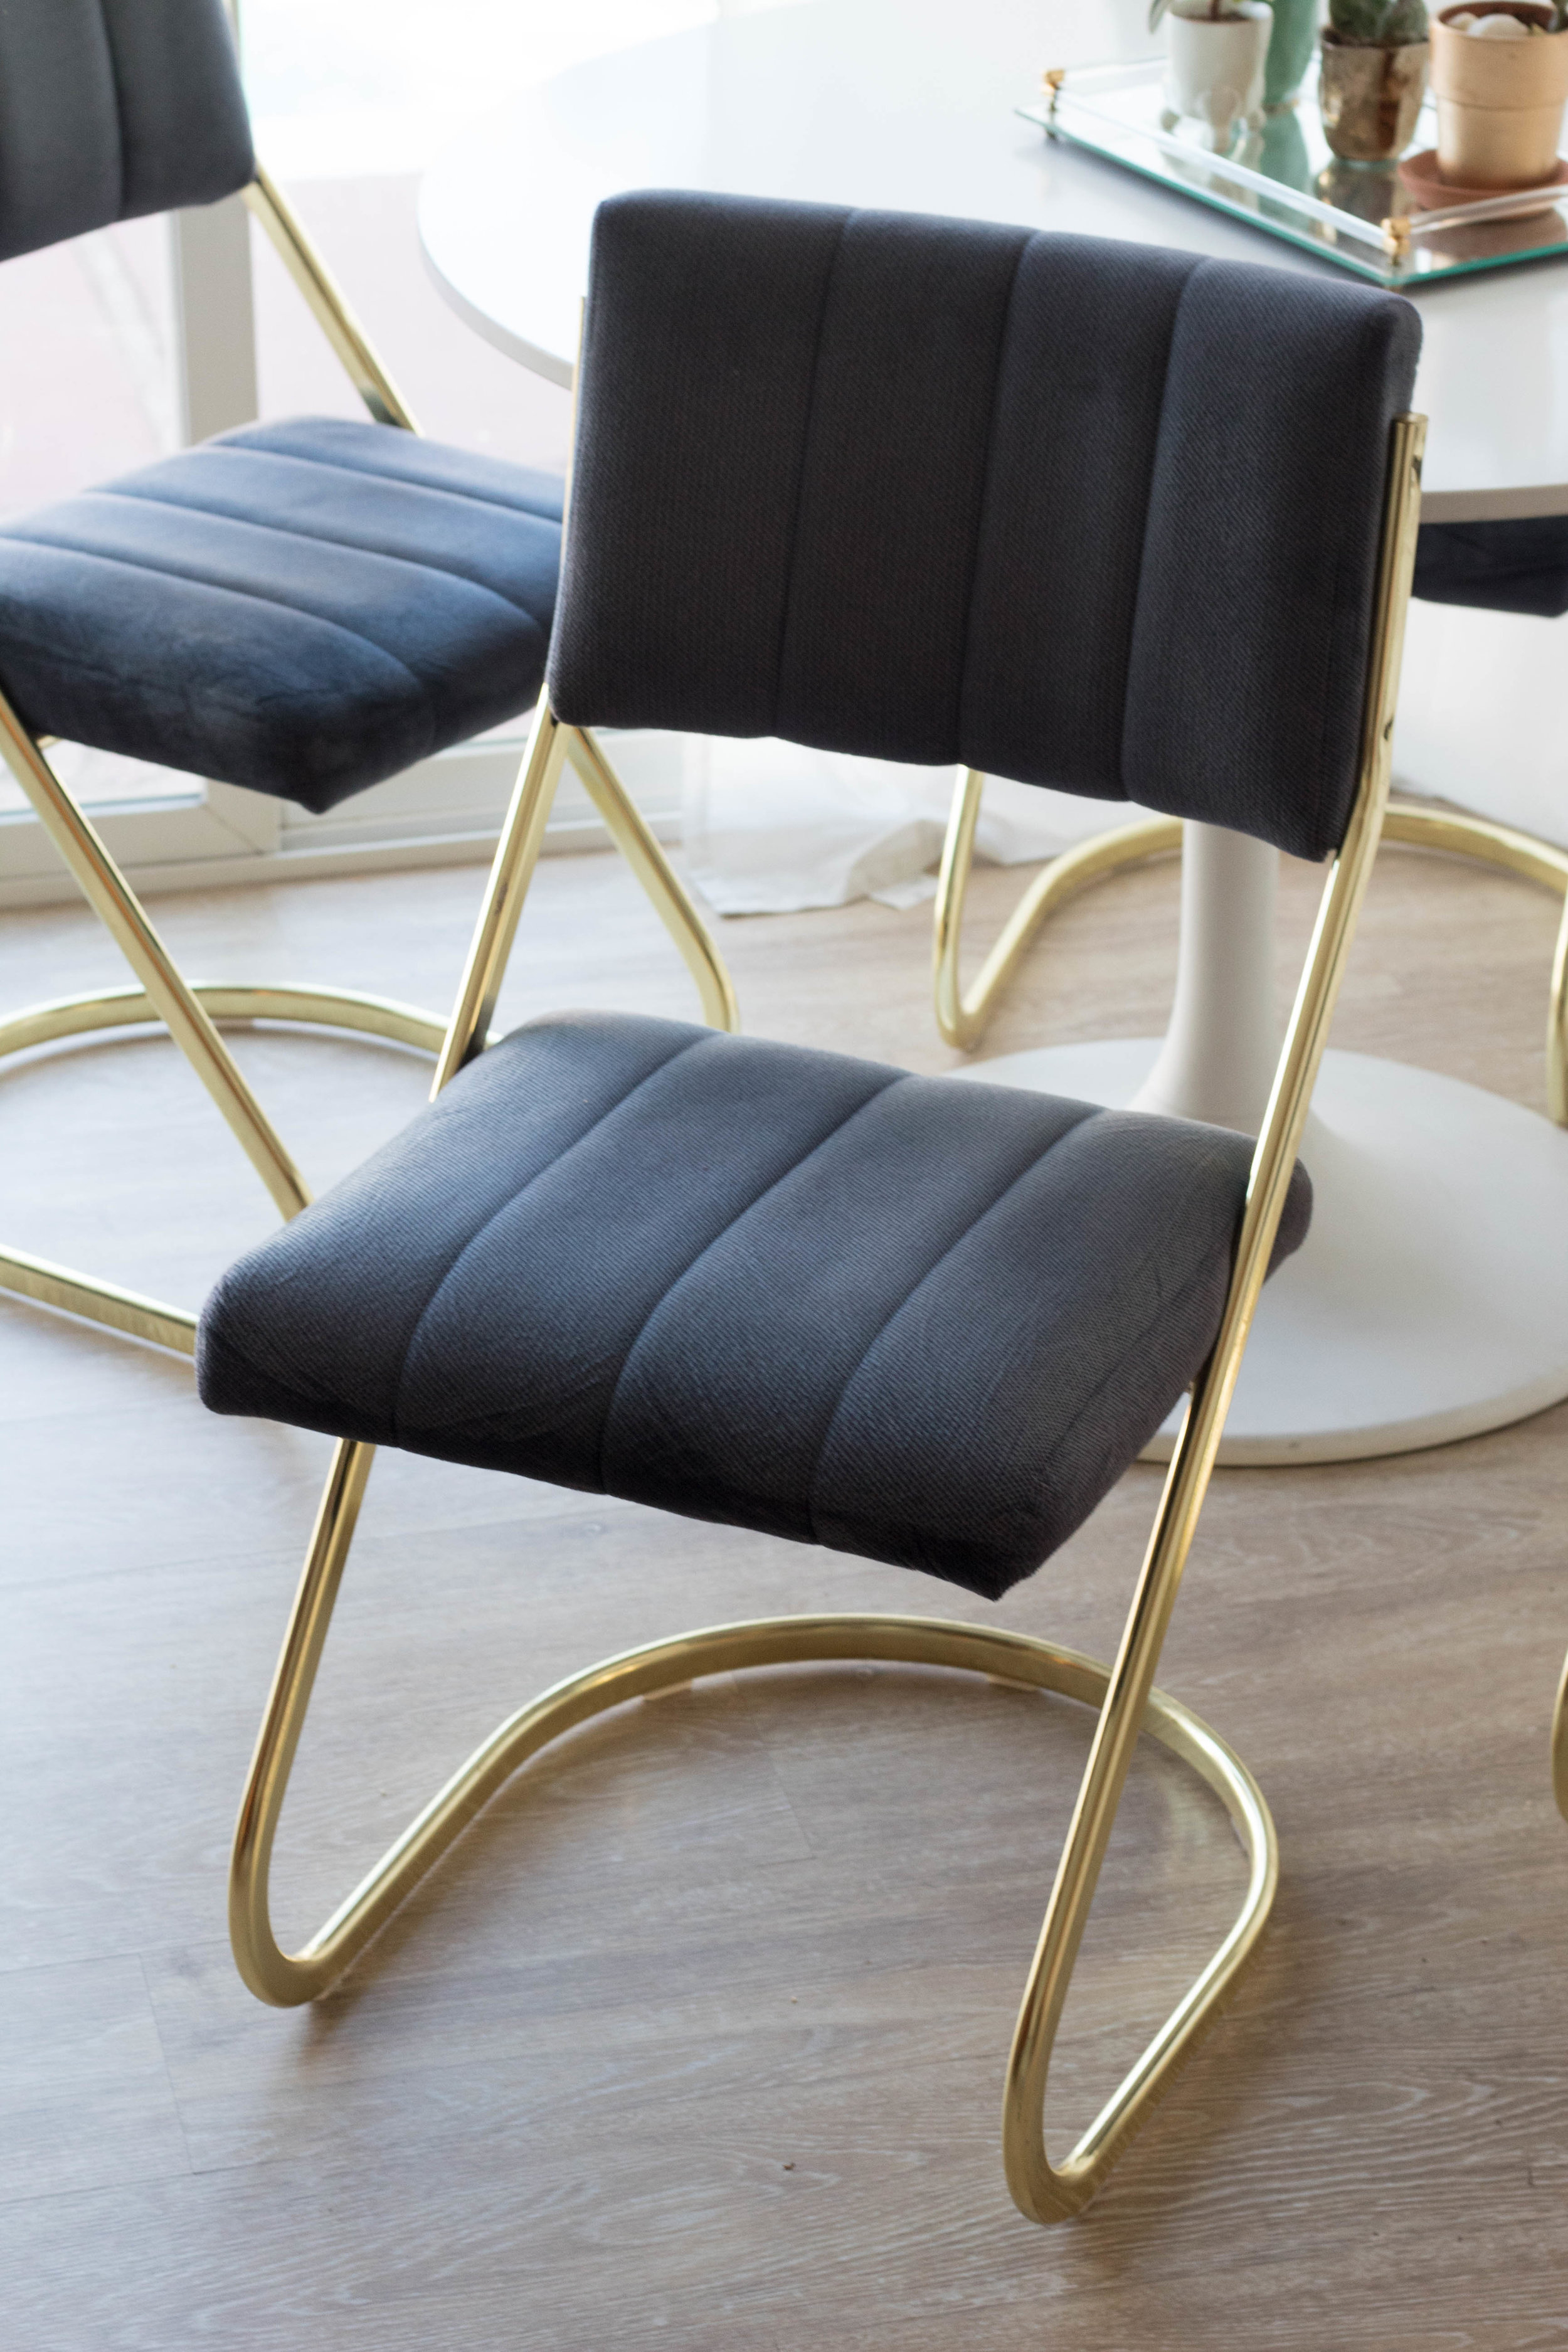 John , Paul, George & Ringo - (4) Blue/gold cantilever chairs